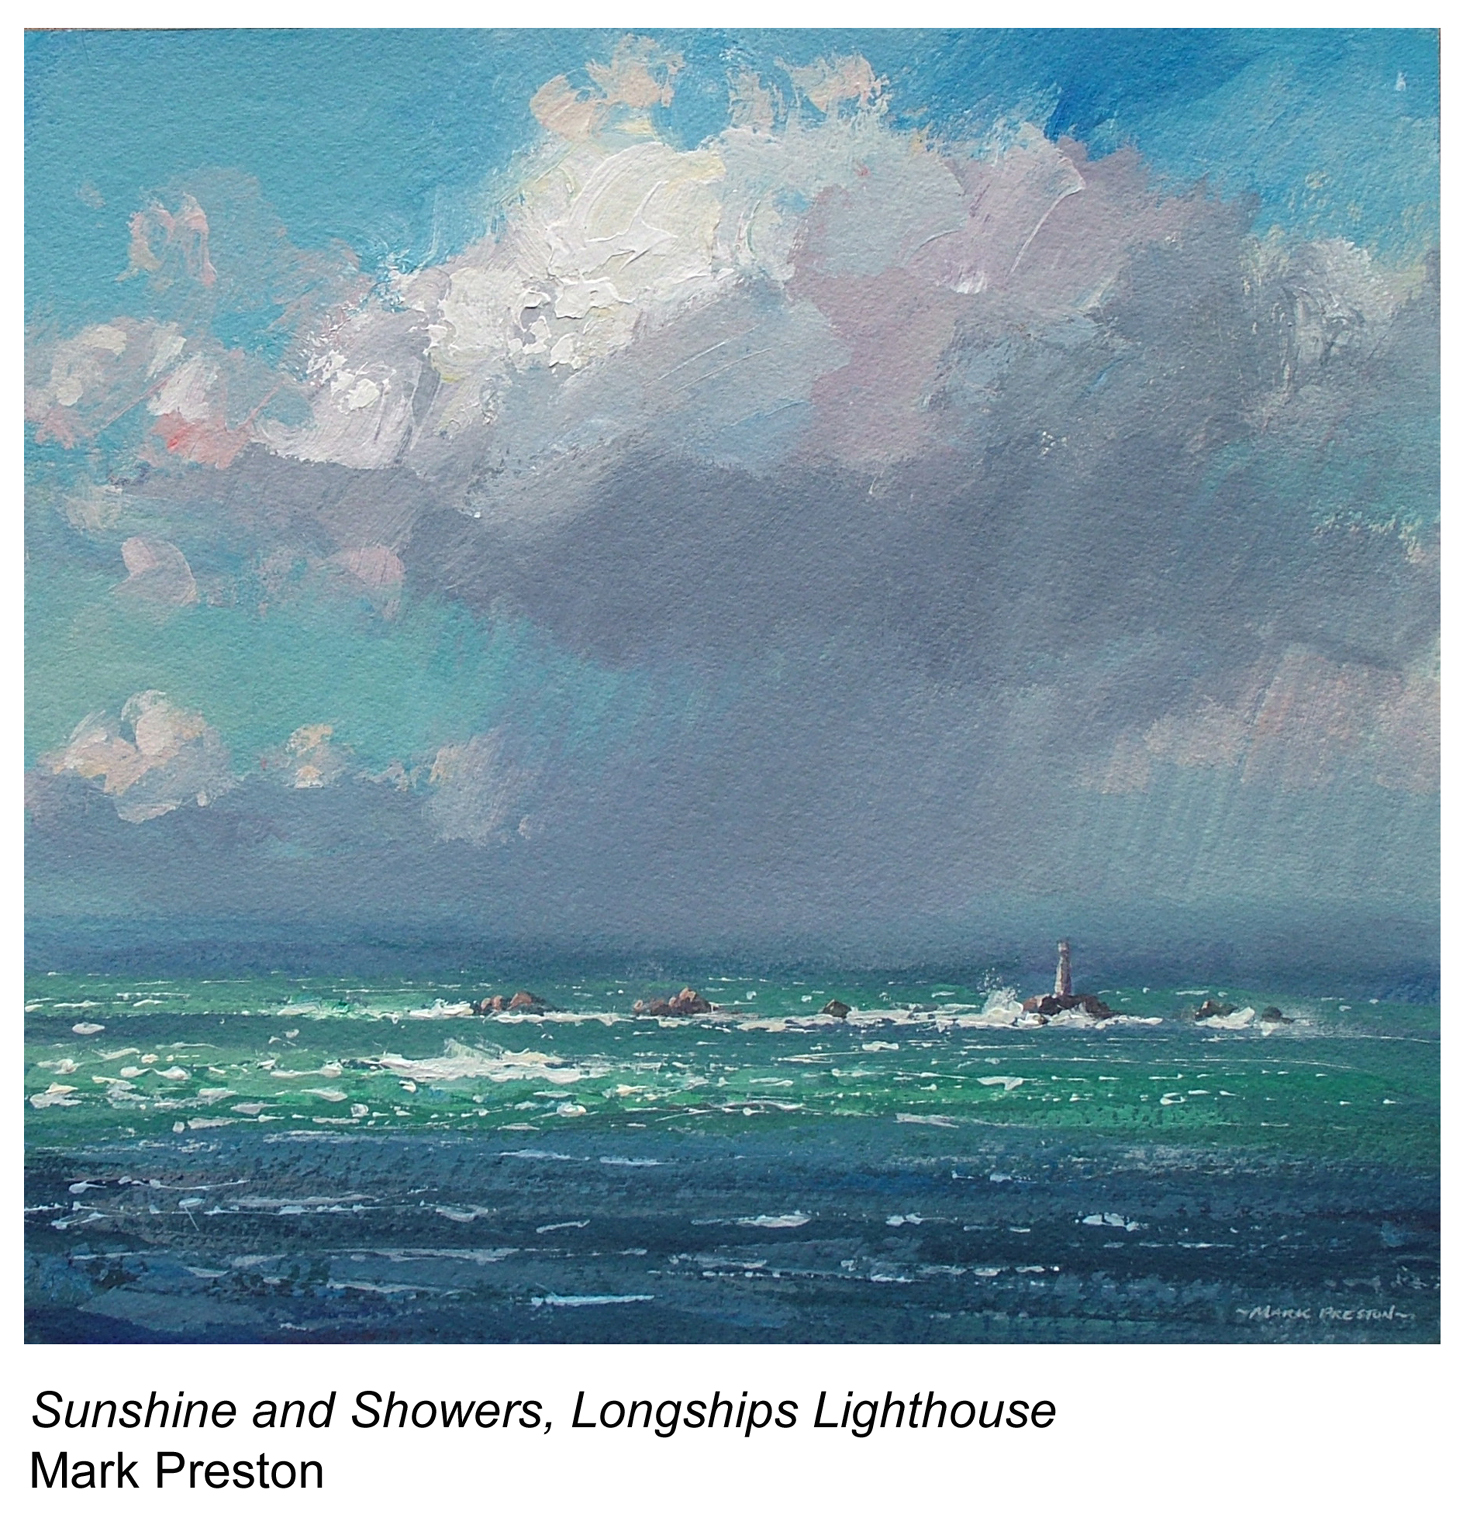 Sunshine and Showers, Longships Lighthouse, a painting by Mark Preston